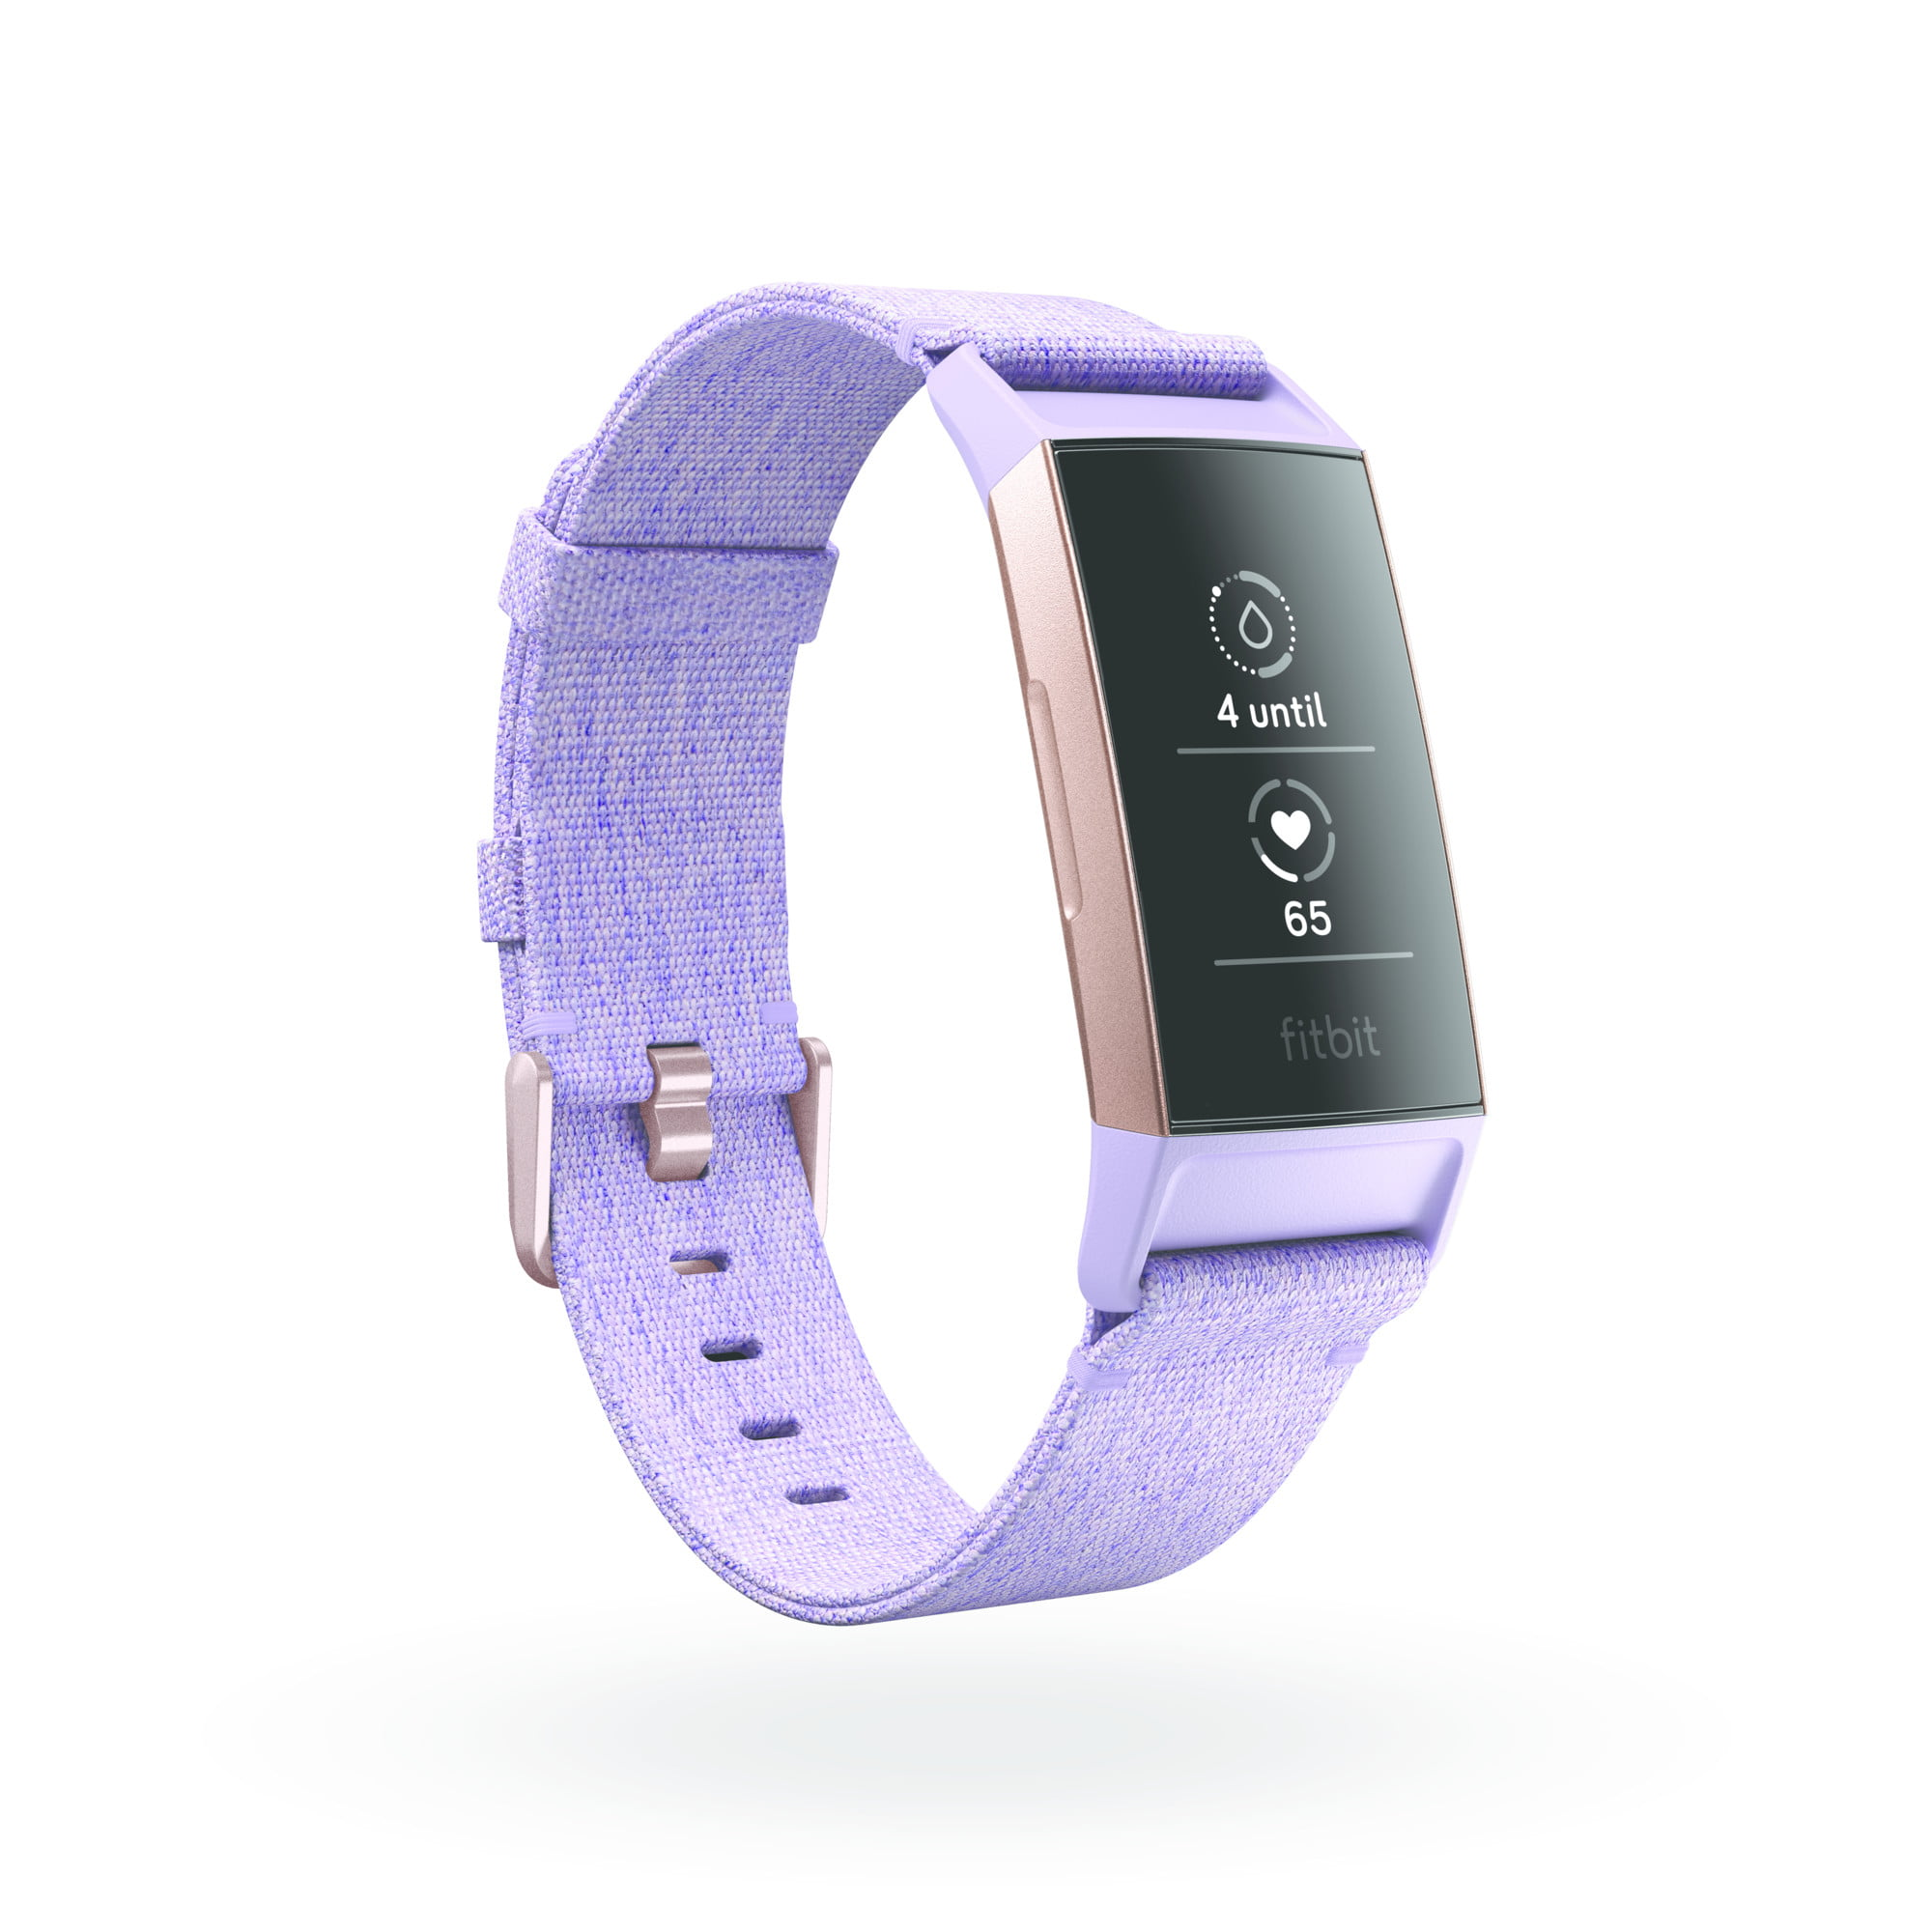 Fitbit 3 special edition sale | Fitbit Charge 3: Here's Everything